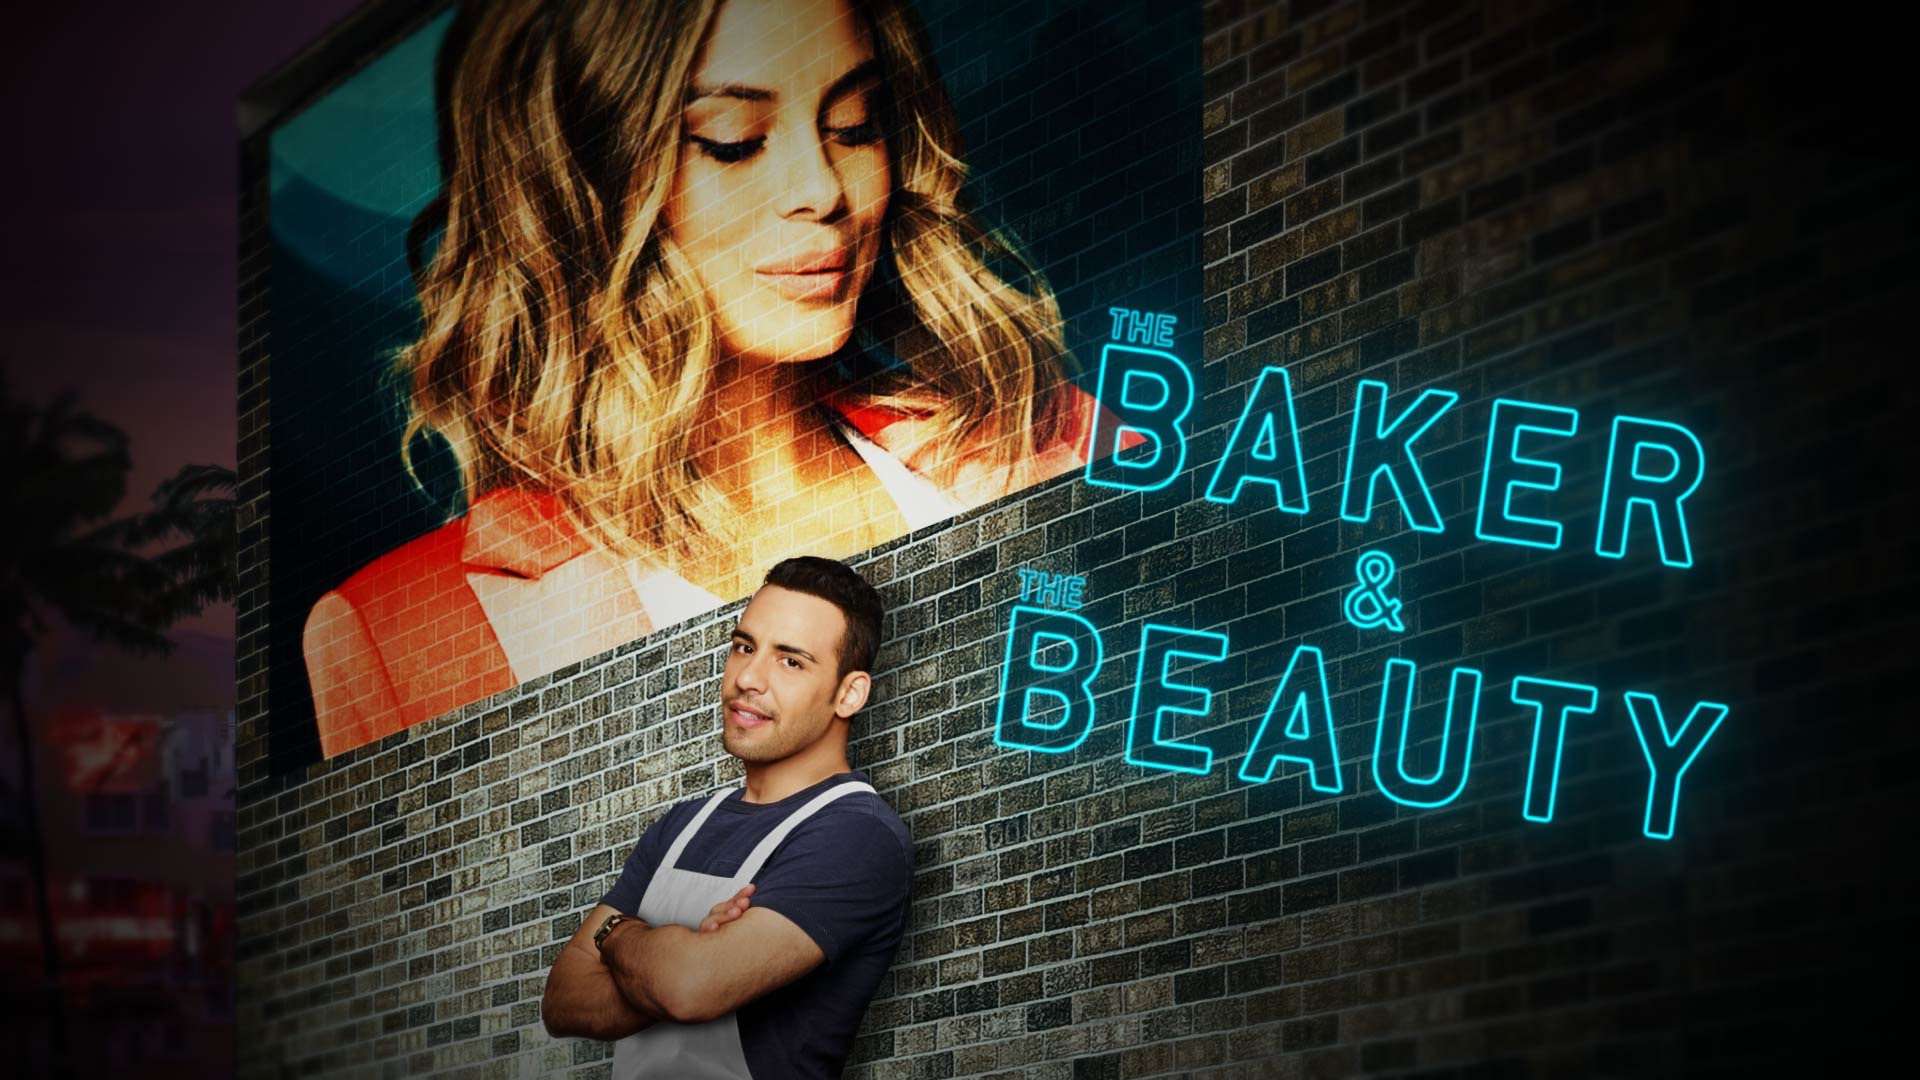 New ABC Shows 2019 Announced! | ABC New Shows